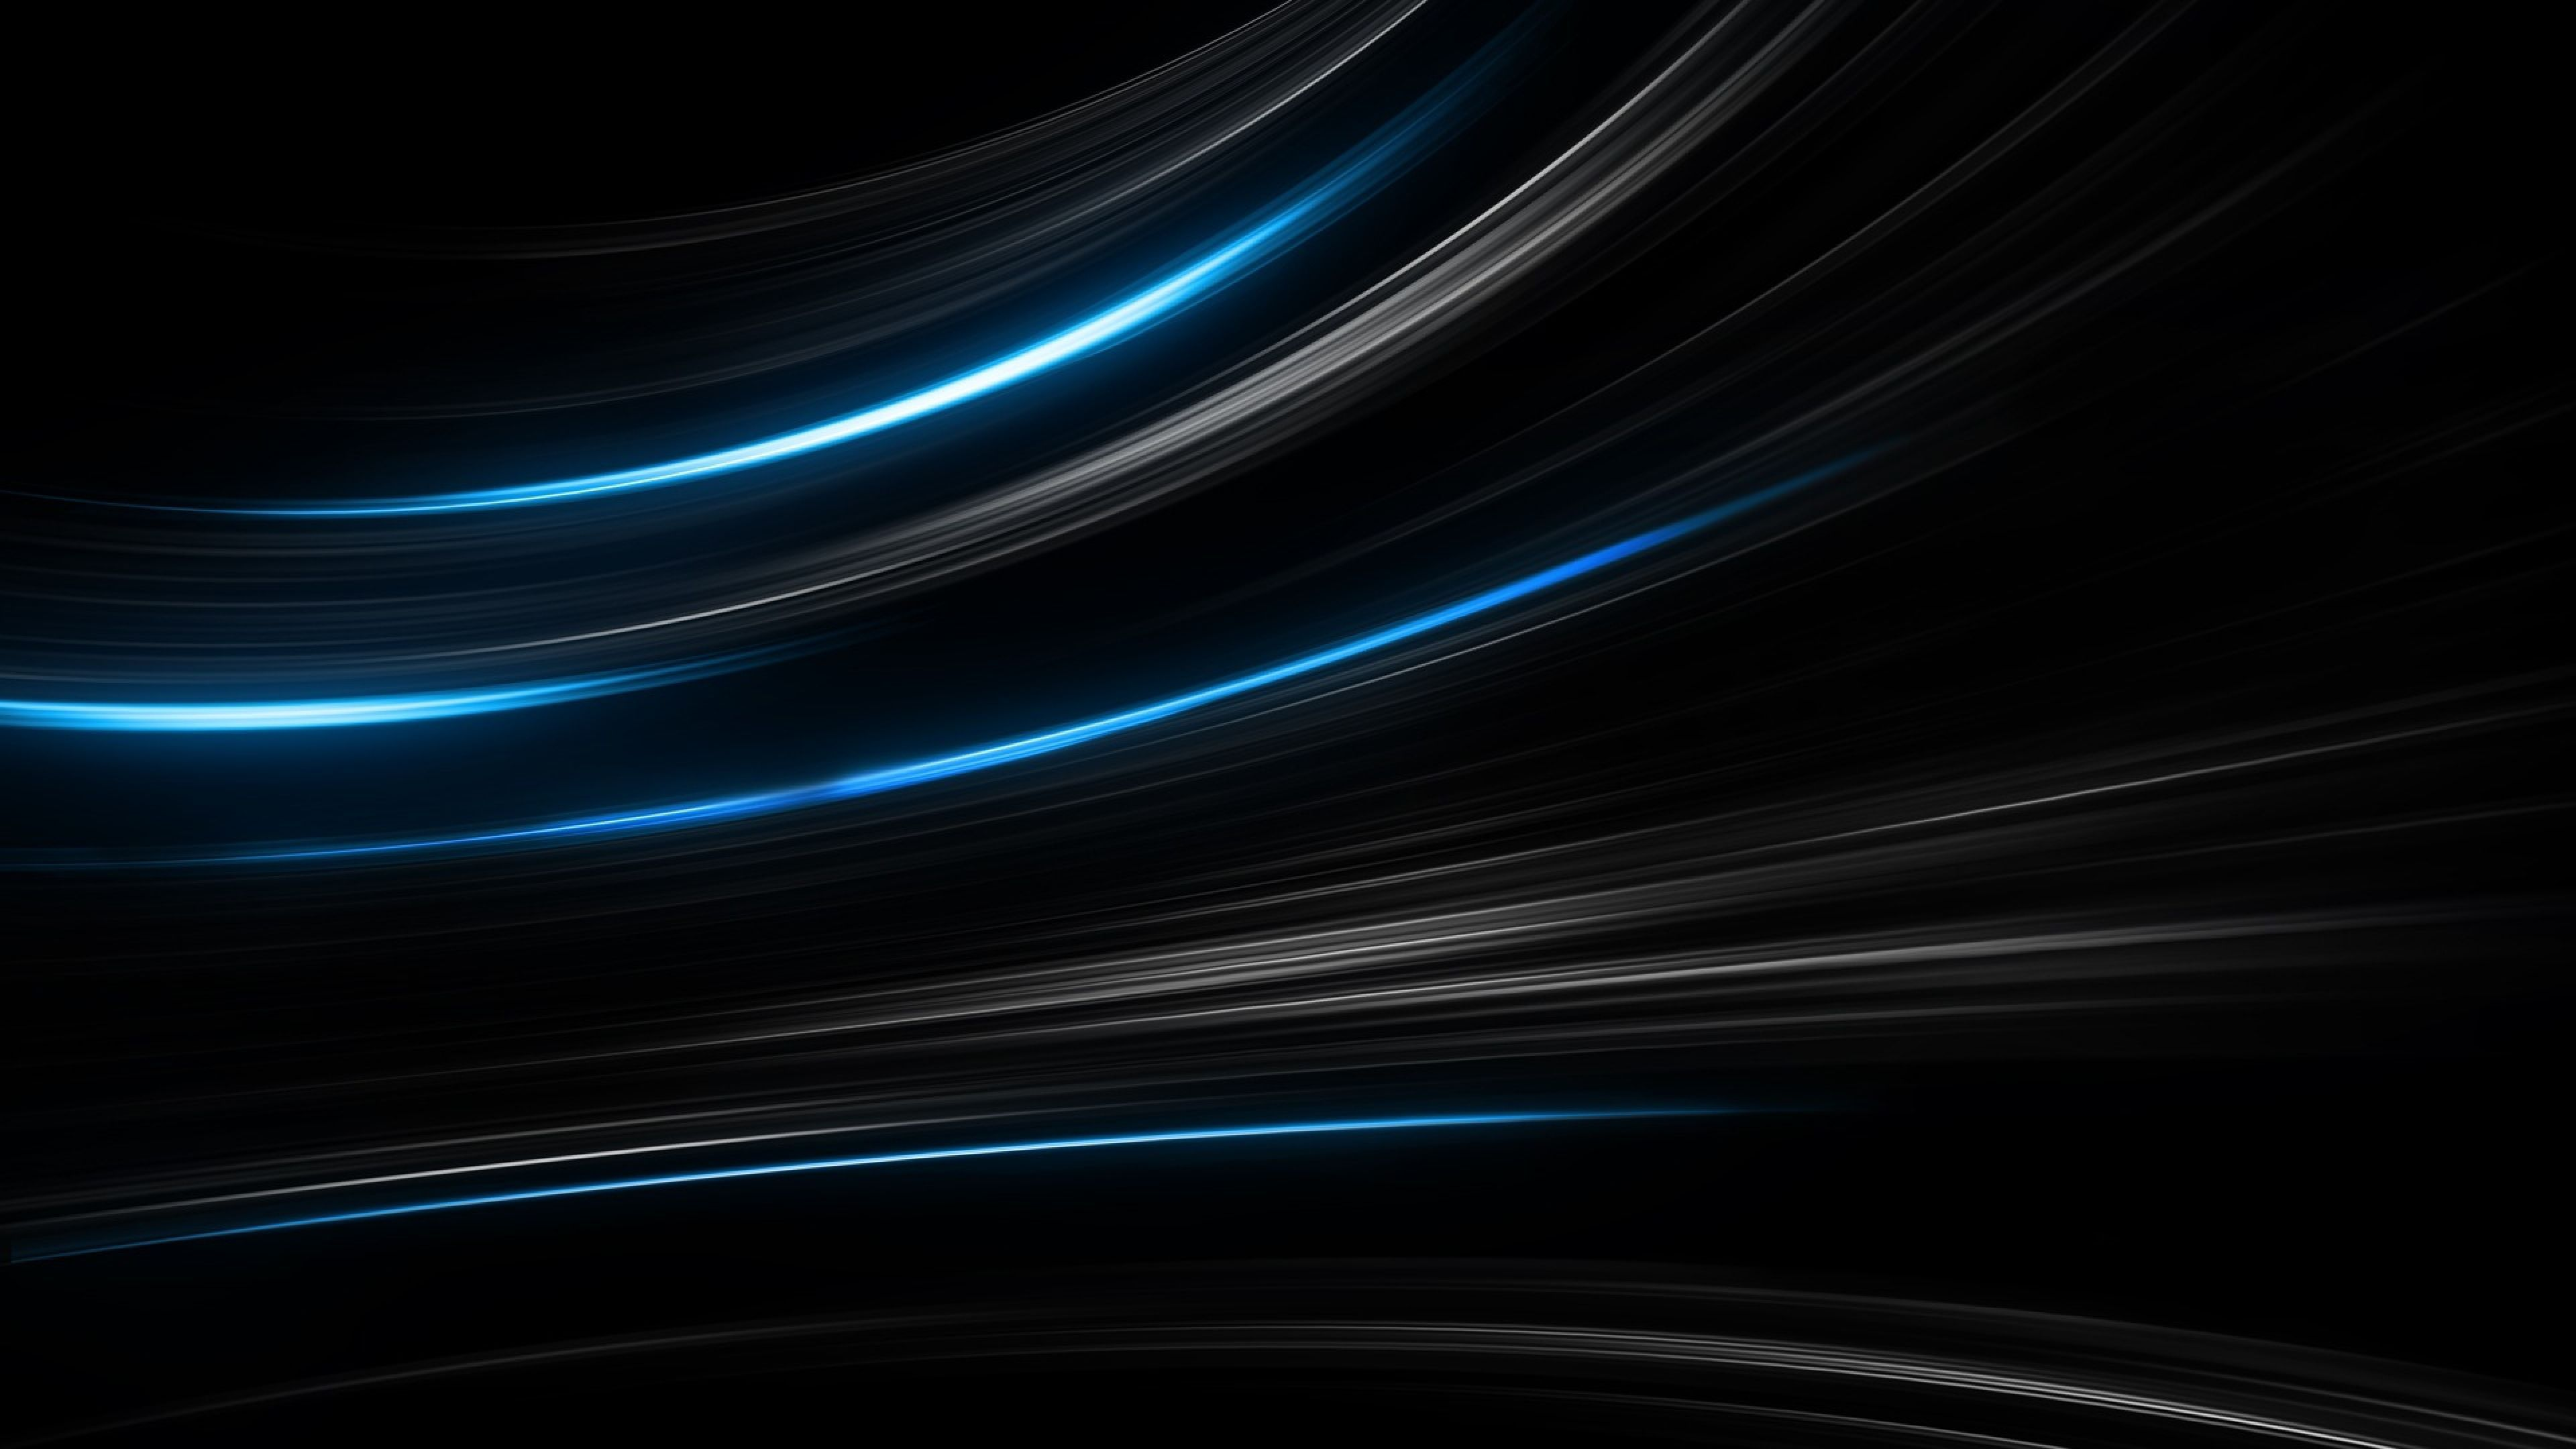 Blue Abstract 4k Wallpaper Dark Blue Wallpaper Black And Blue